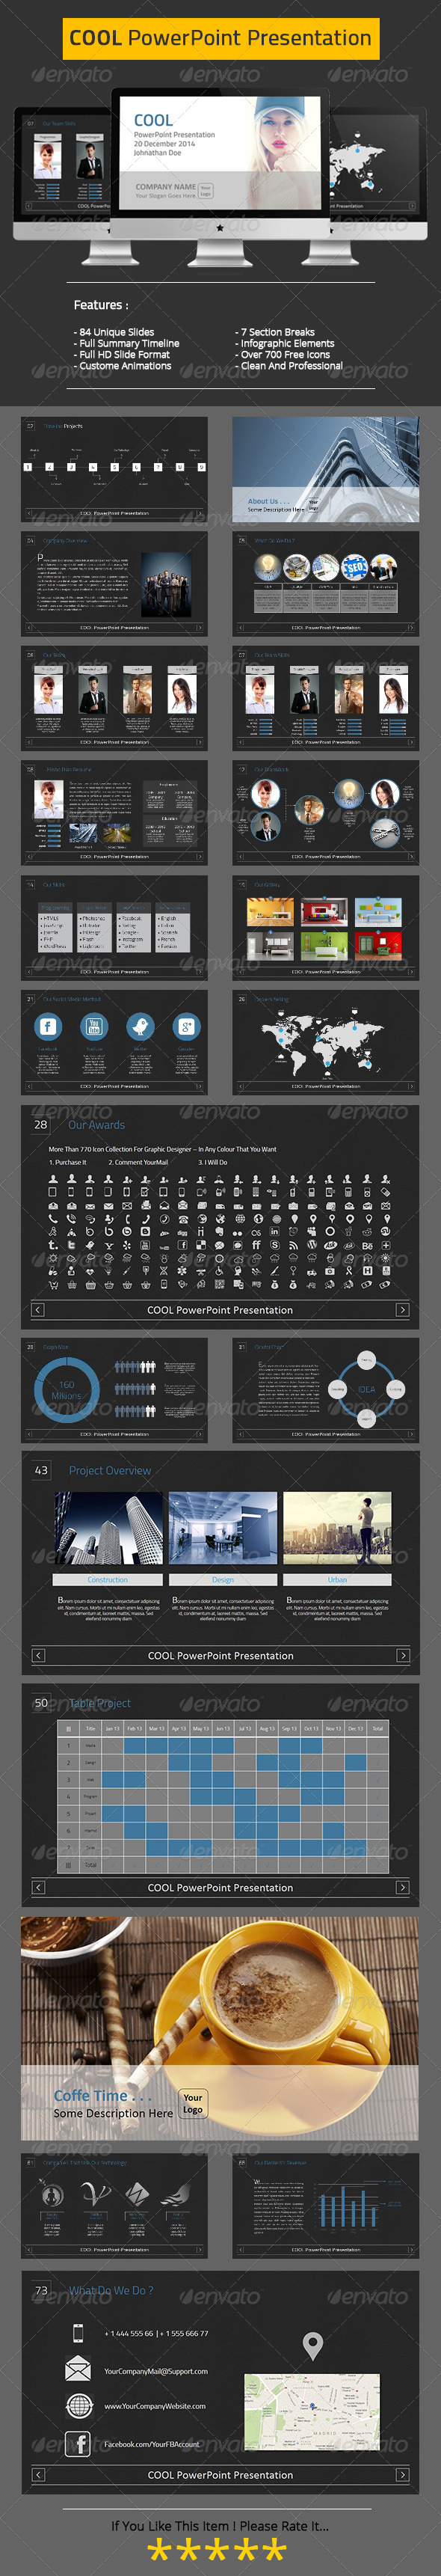 GraphicRiver COOL PowerPoint Presentation 6647912